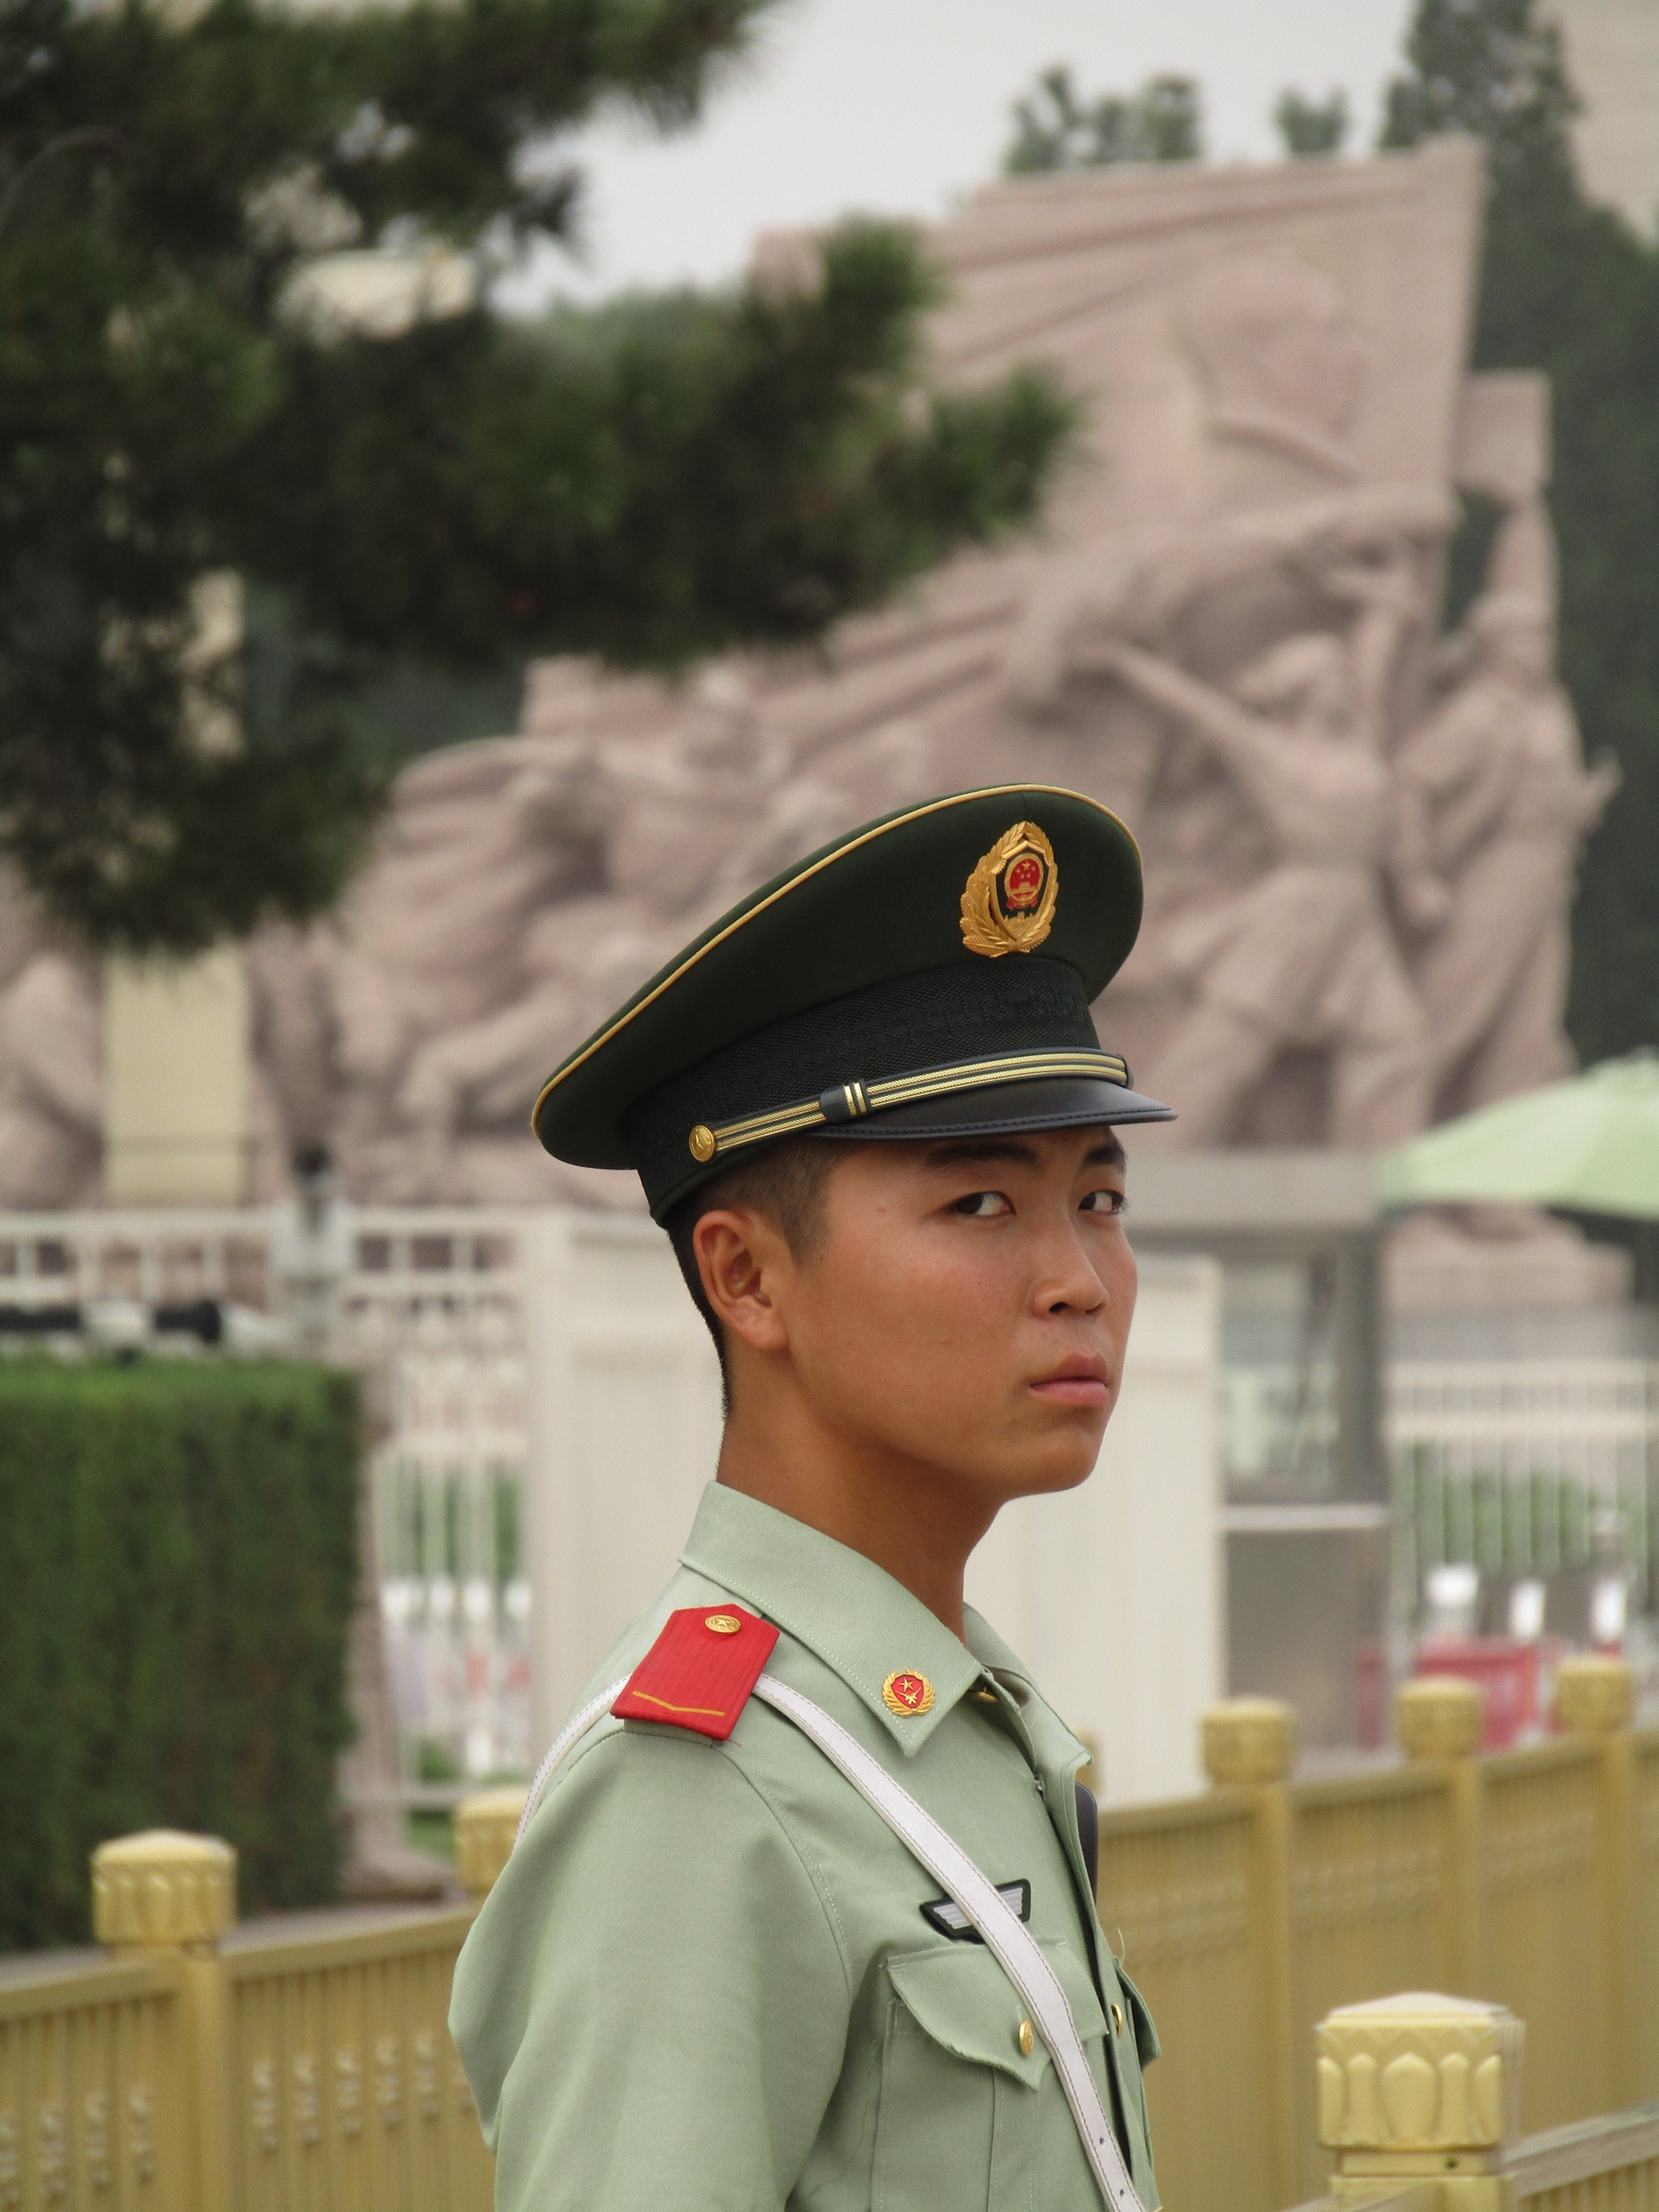 A young guard in Tiananmen Square gives us the side eye